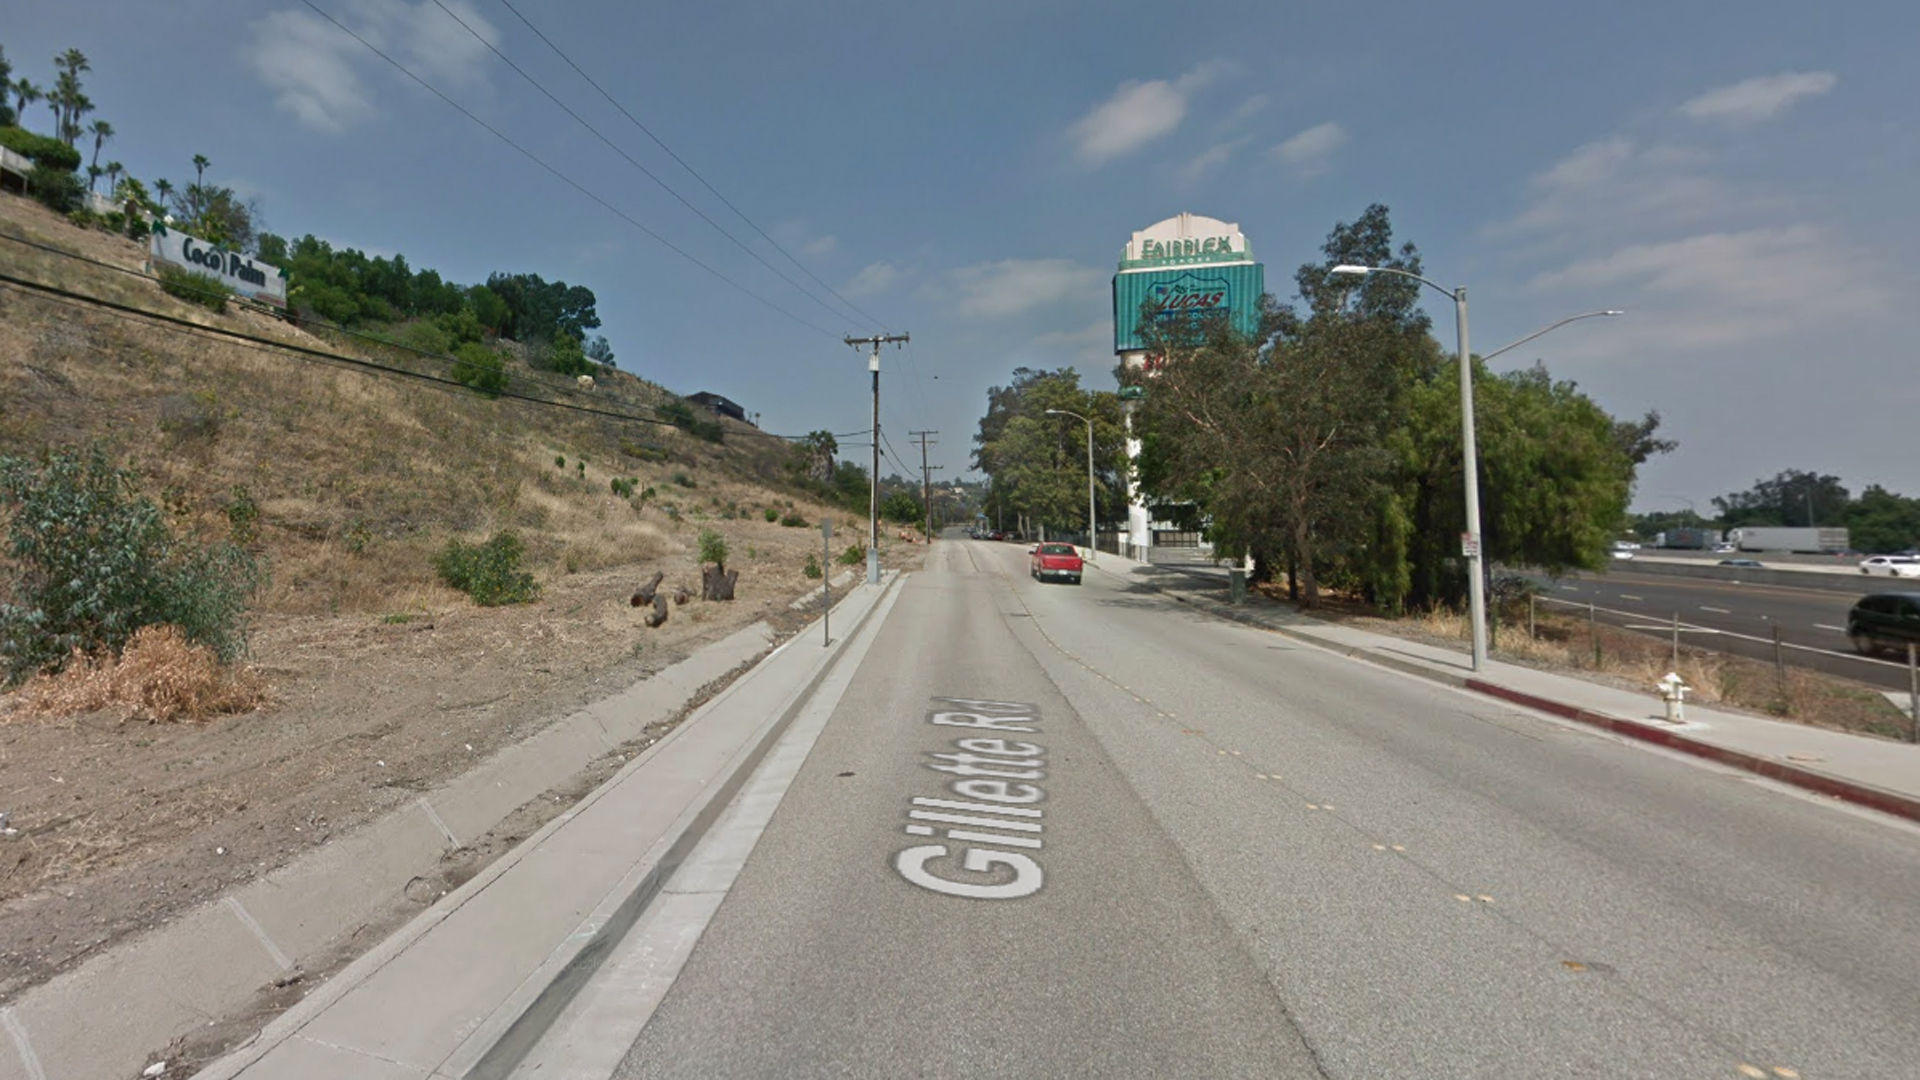 The 1800 block of Gillette Road in Pomona, as pictured in a Google Street View image in June of 2015.